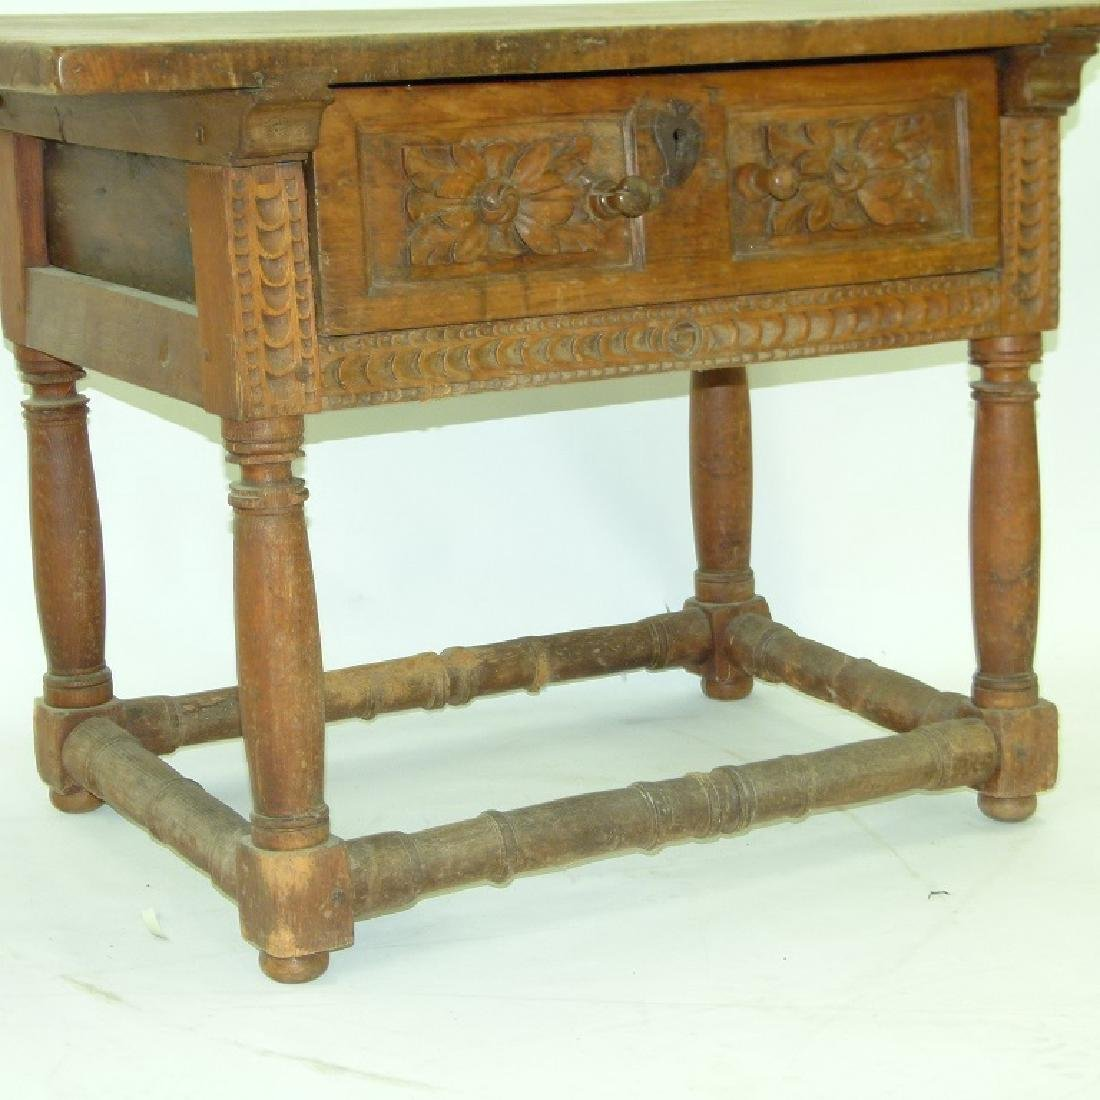 SPANISH COLONIAL SINGLE DRAWER TABLE - 3